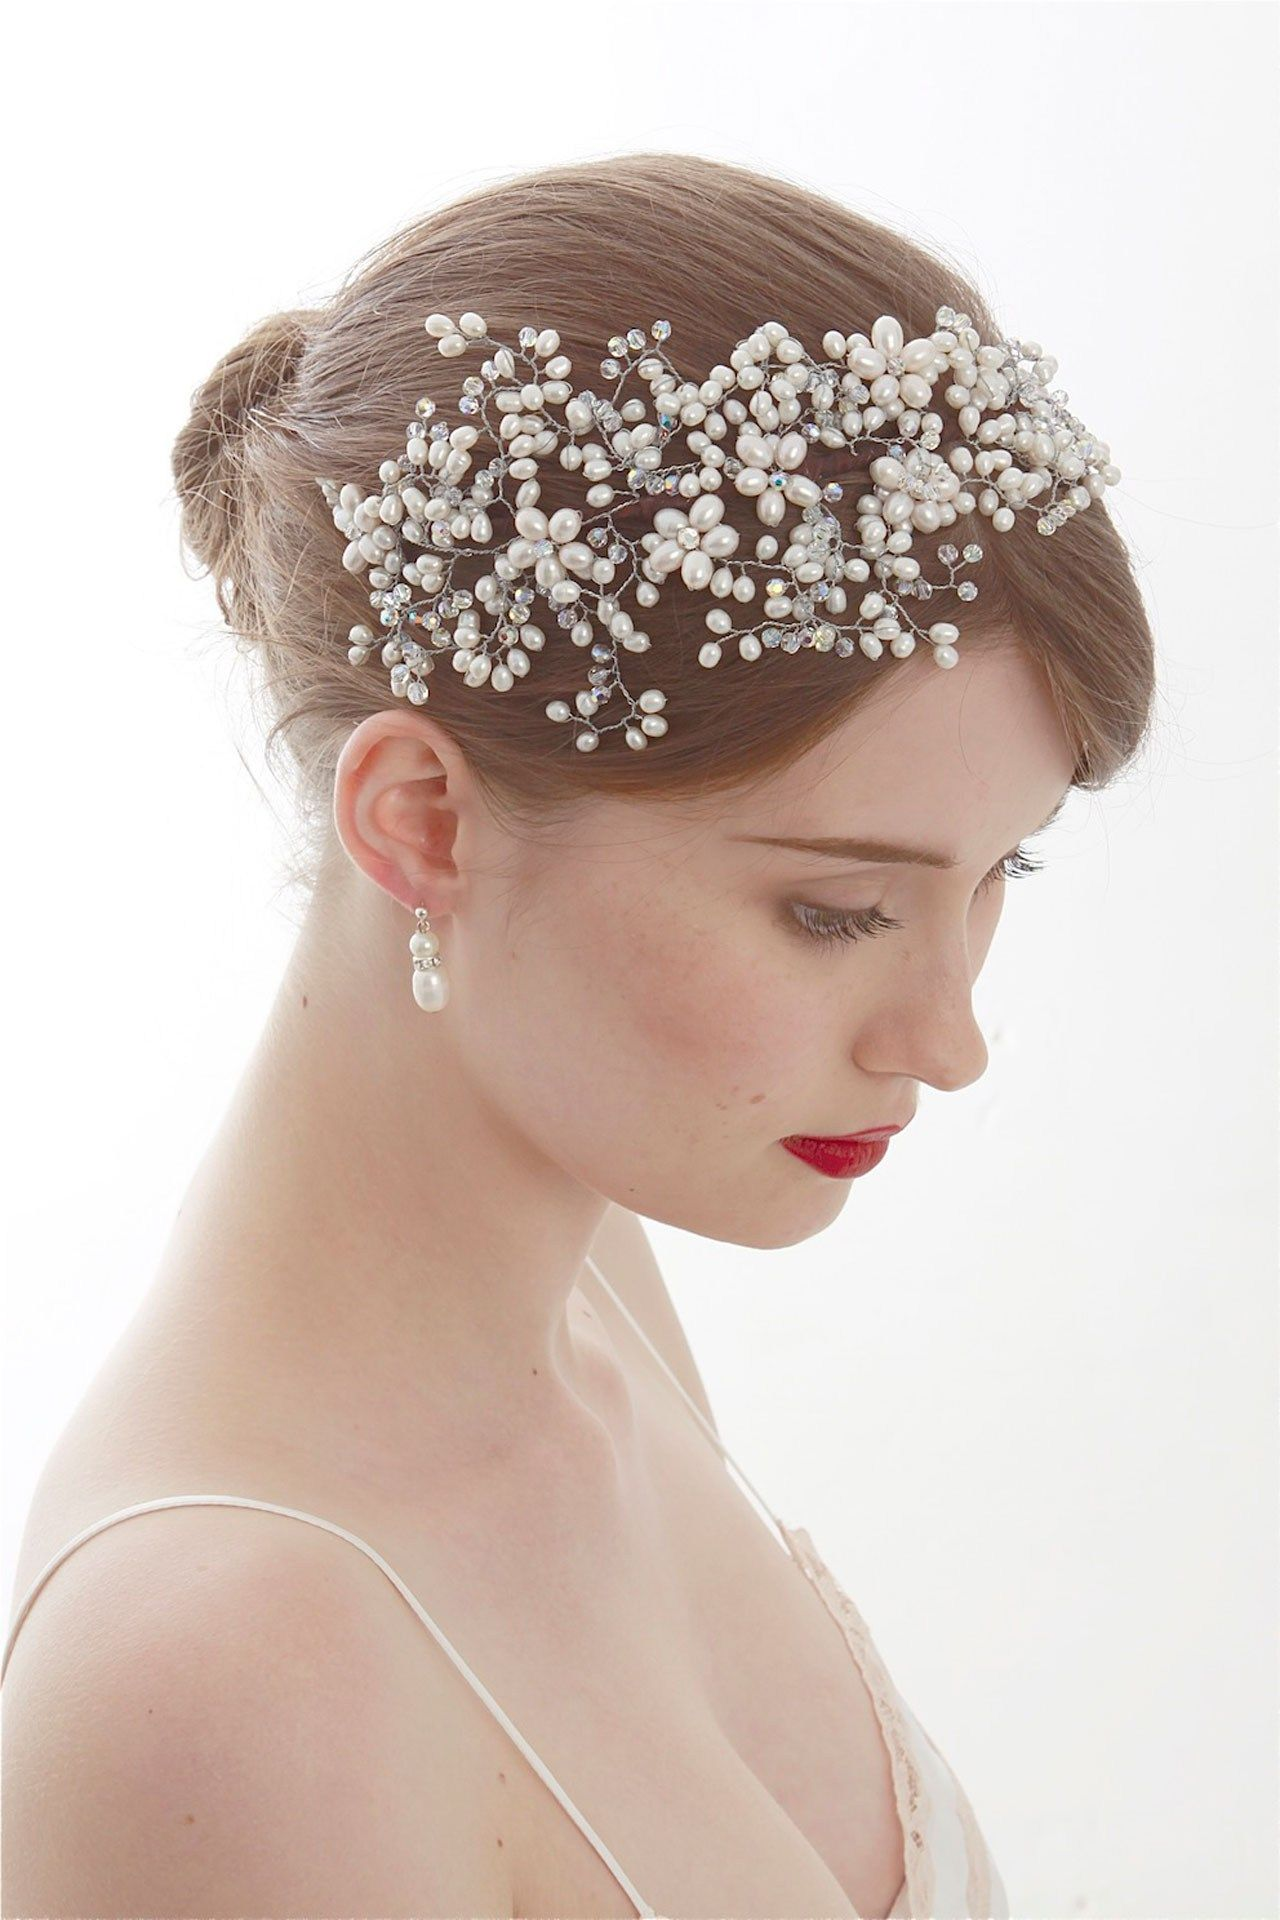 wedding hair accessories - bridal accessories (bridesmagazine.co